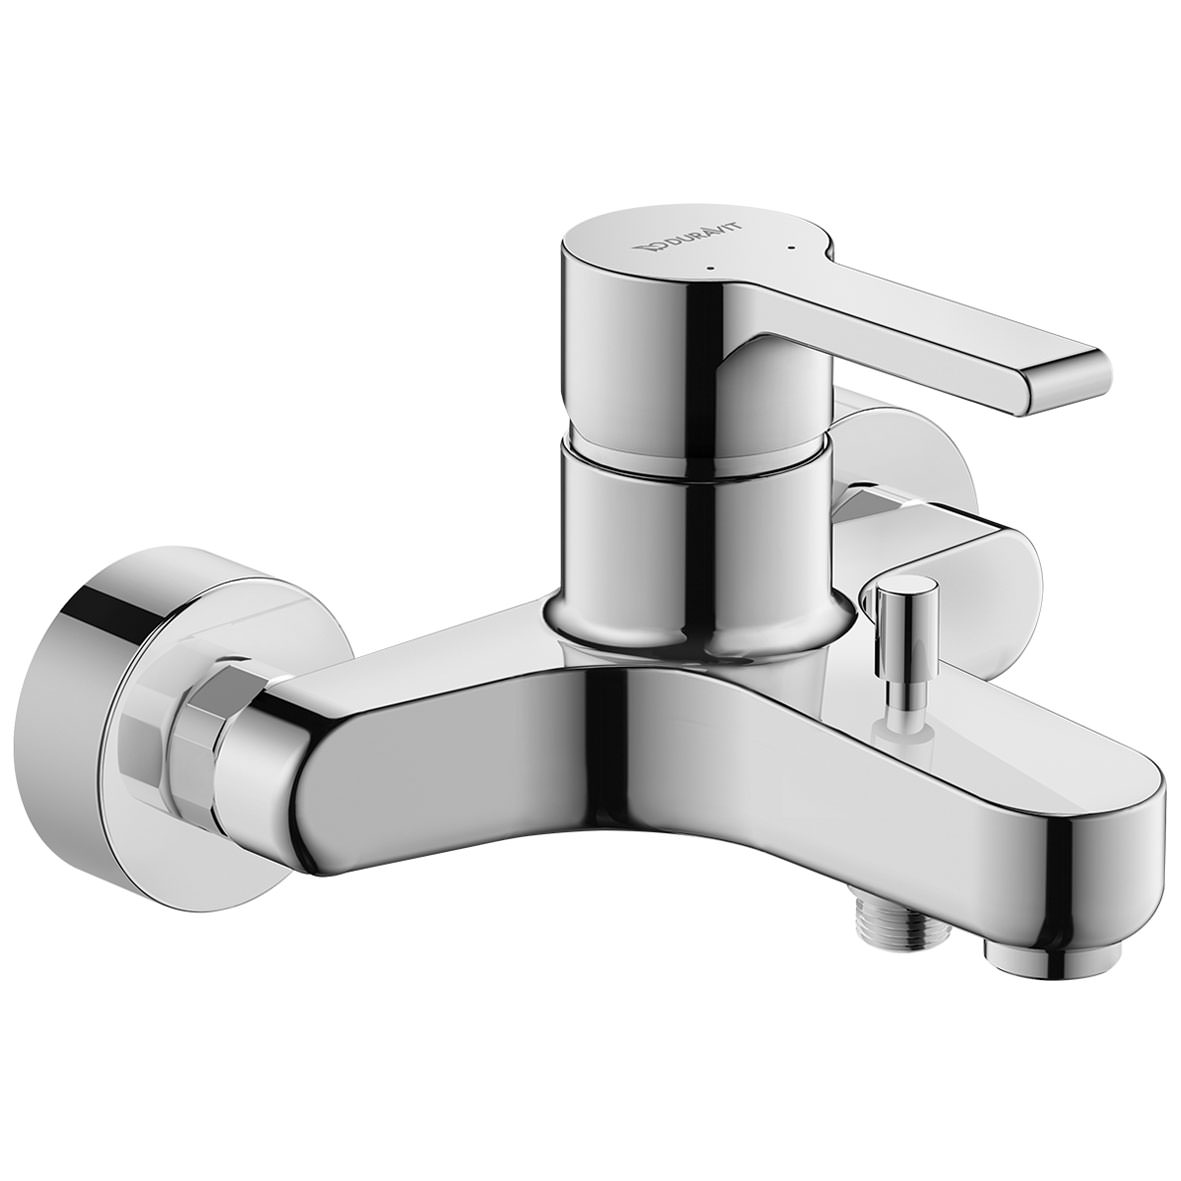 B.2 Single Lever Exposed Wall Mounted Manual Bath-Shower Mixer Tap